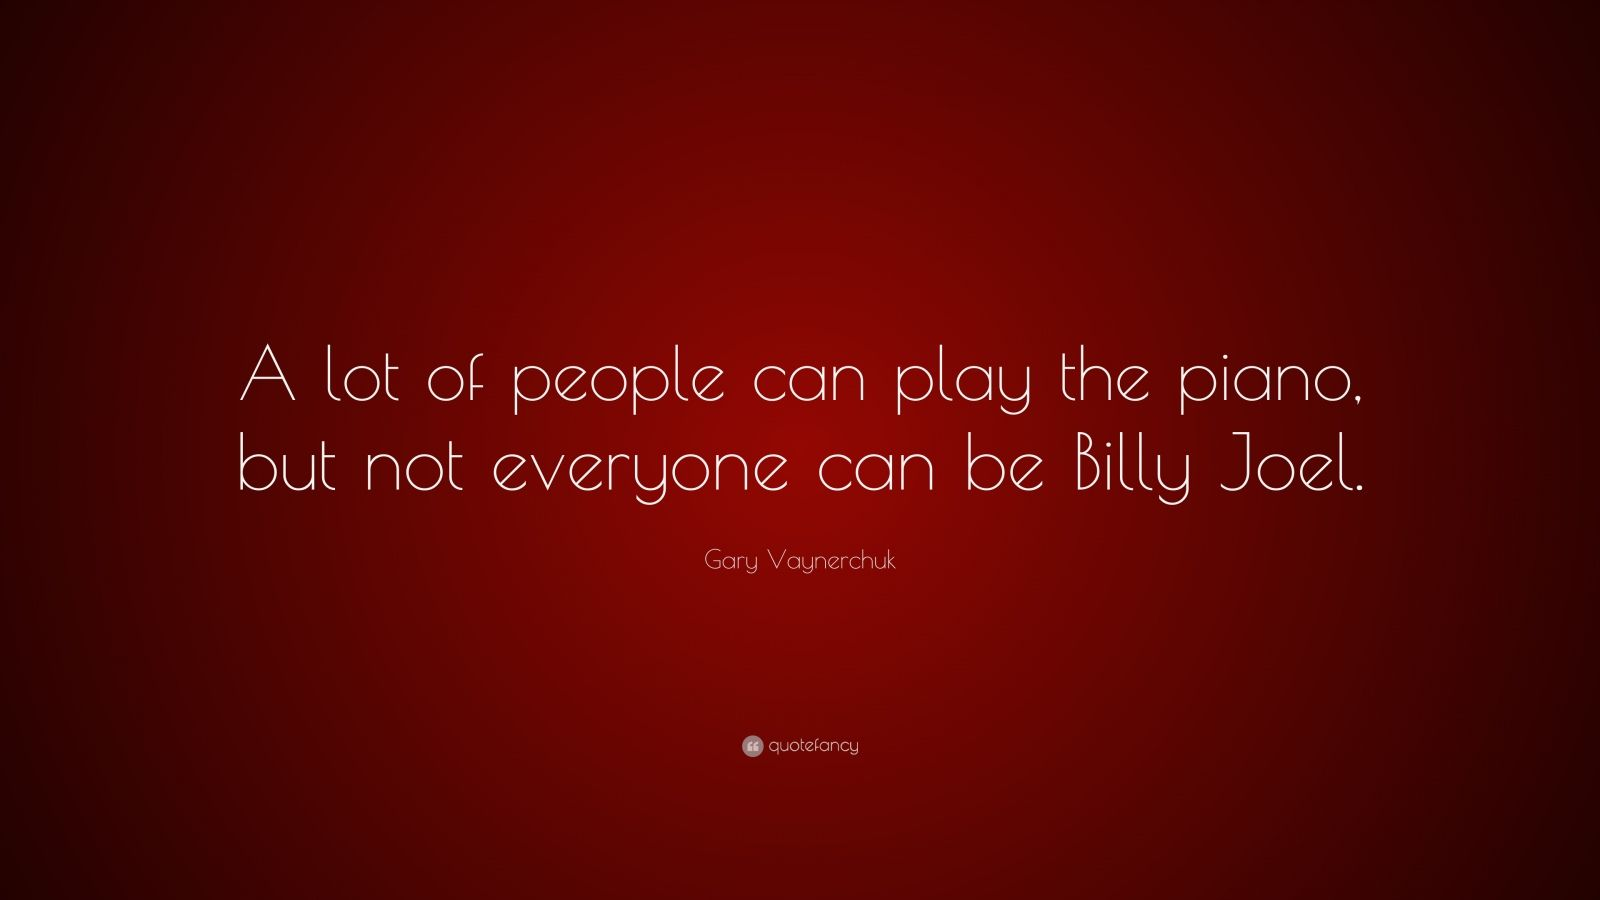 """Gary Vaynerchuk Quote: """"A lot of people can play the piano, but not everyone can be Billy Joel."""""""